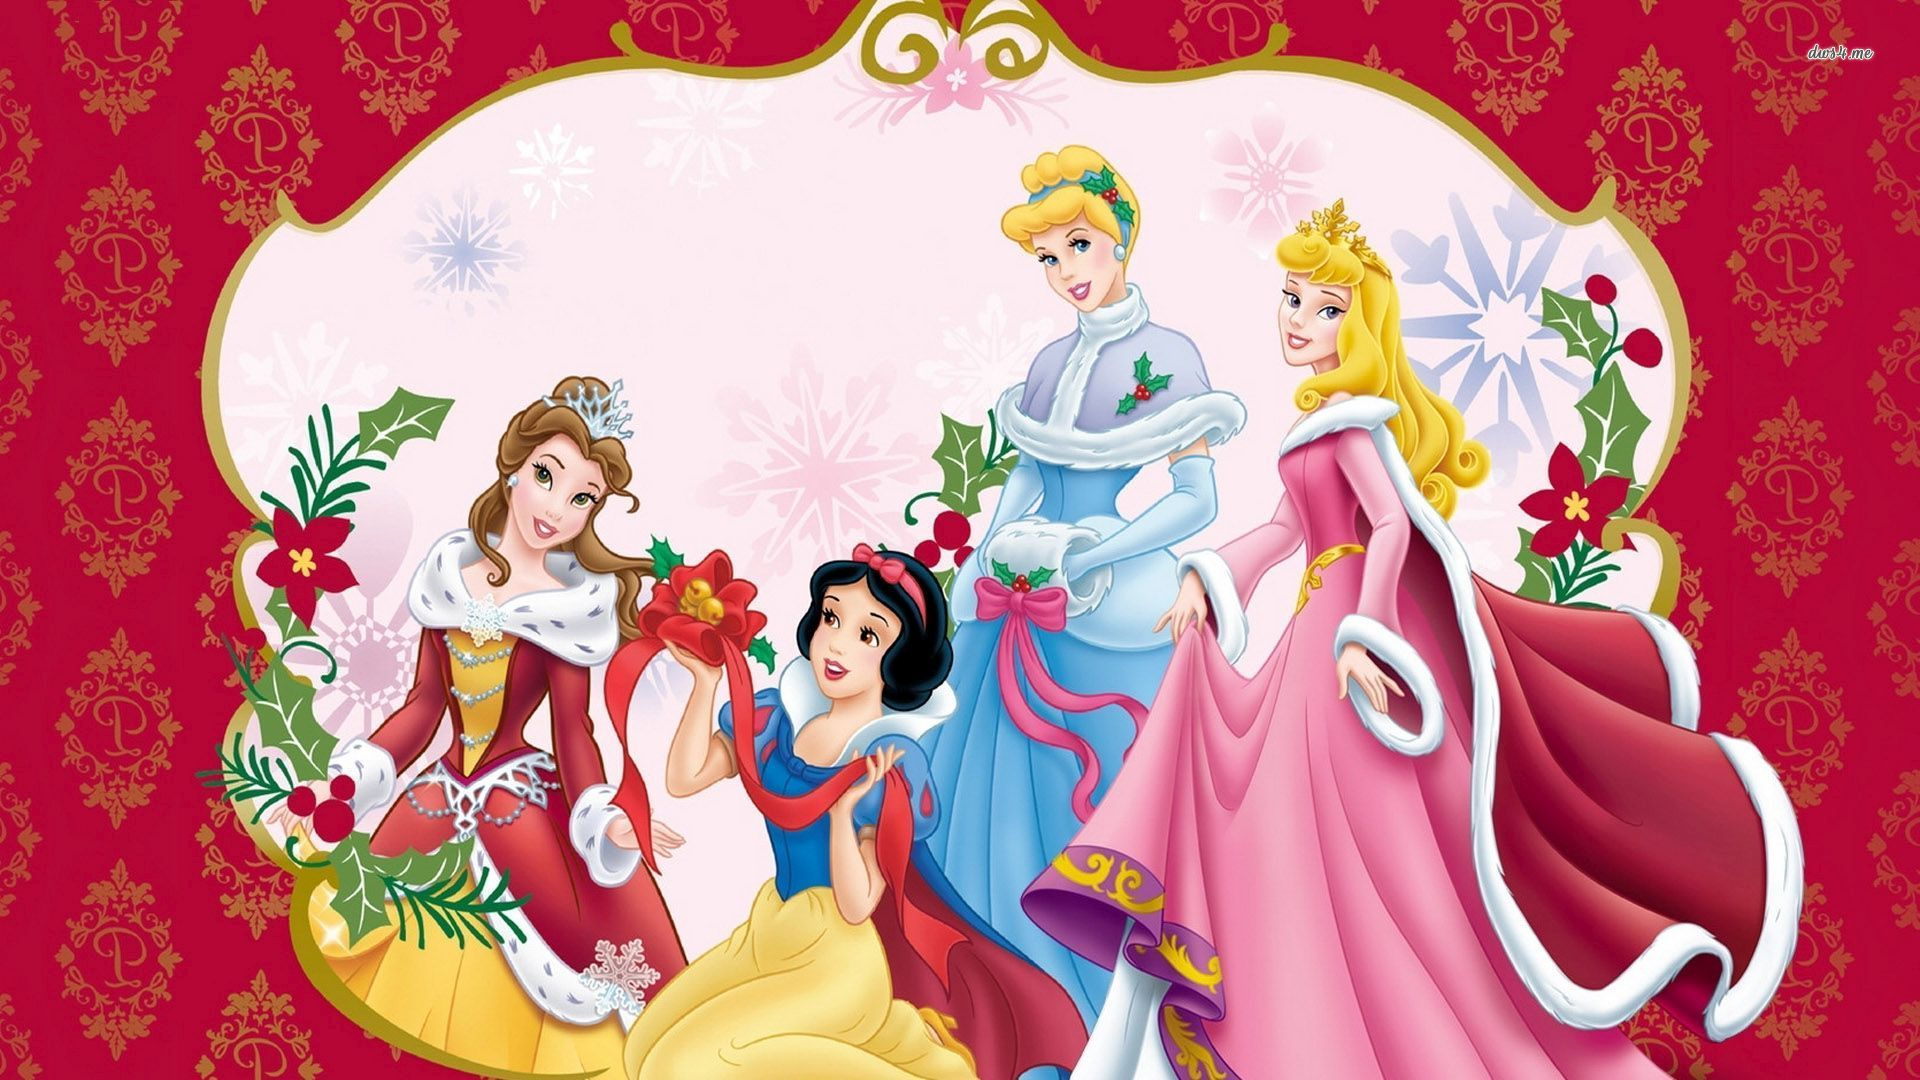 Disney com princess castle backgrounds disney princesses html code - Disney Princesses Wallpaper 1280x800 Disney Princesses Wallpaper